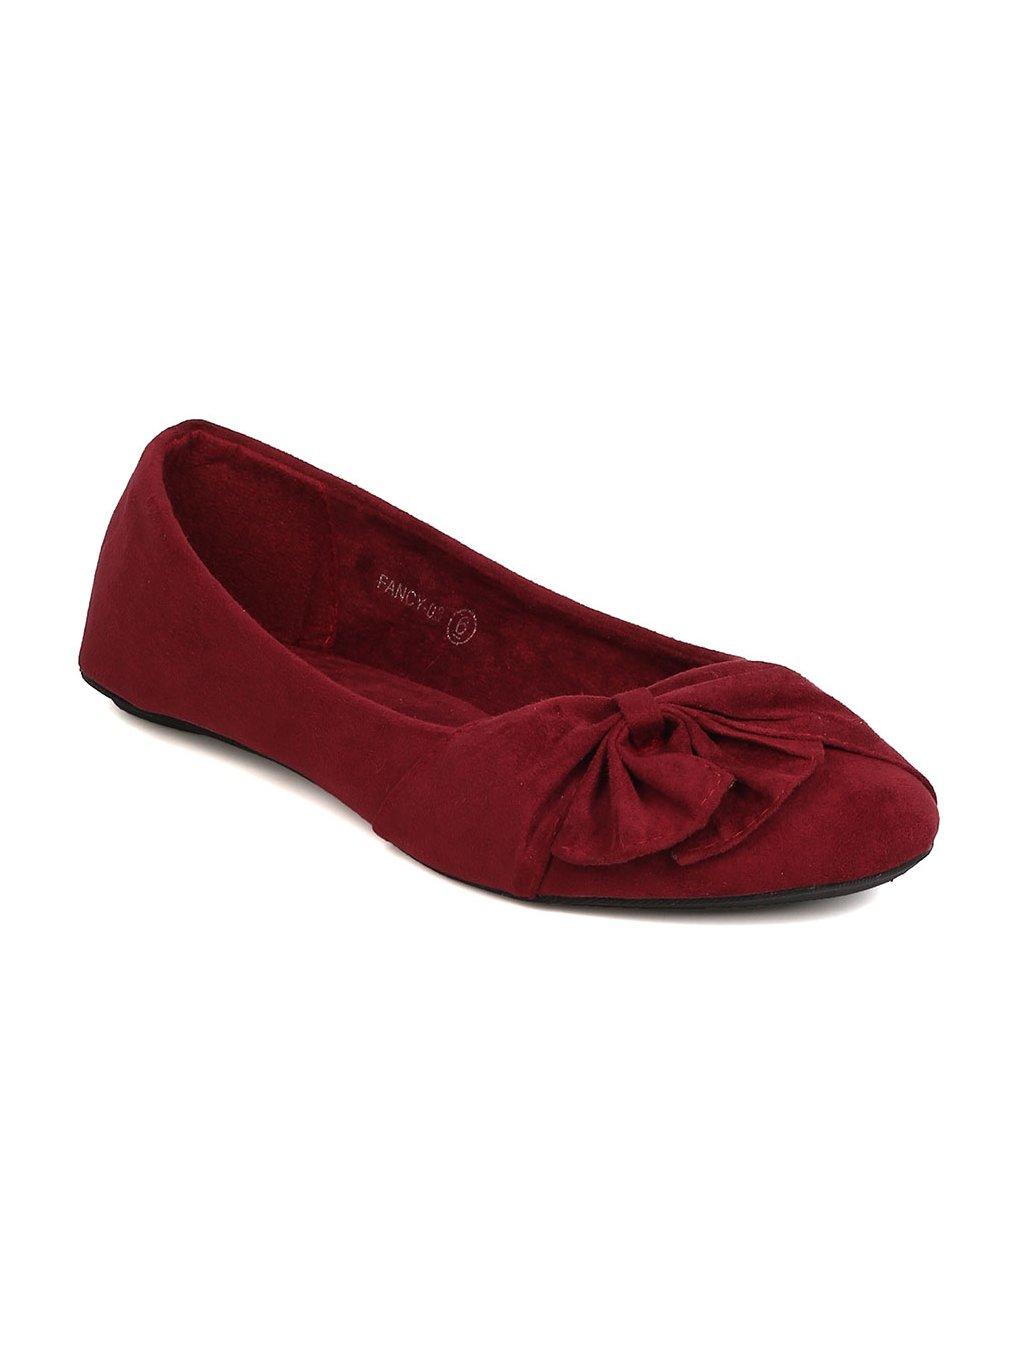 Alrisco Women Faux Suede Ruched Bow Ballet Flat GC69 - Burgundy (Size: 9.0)